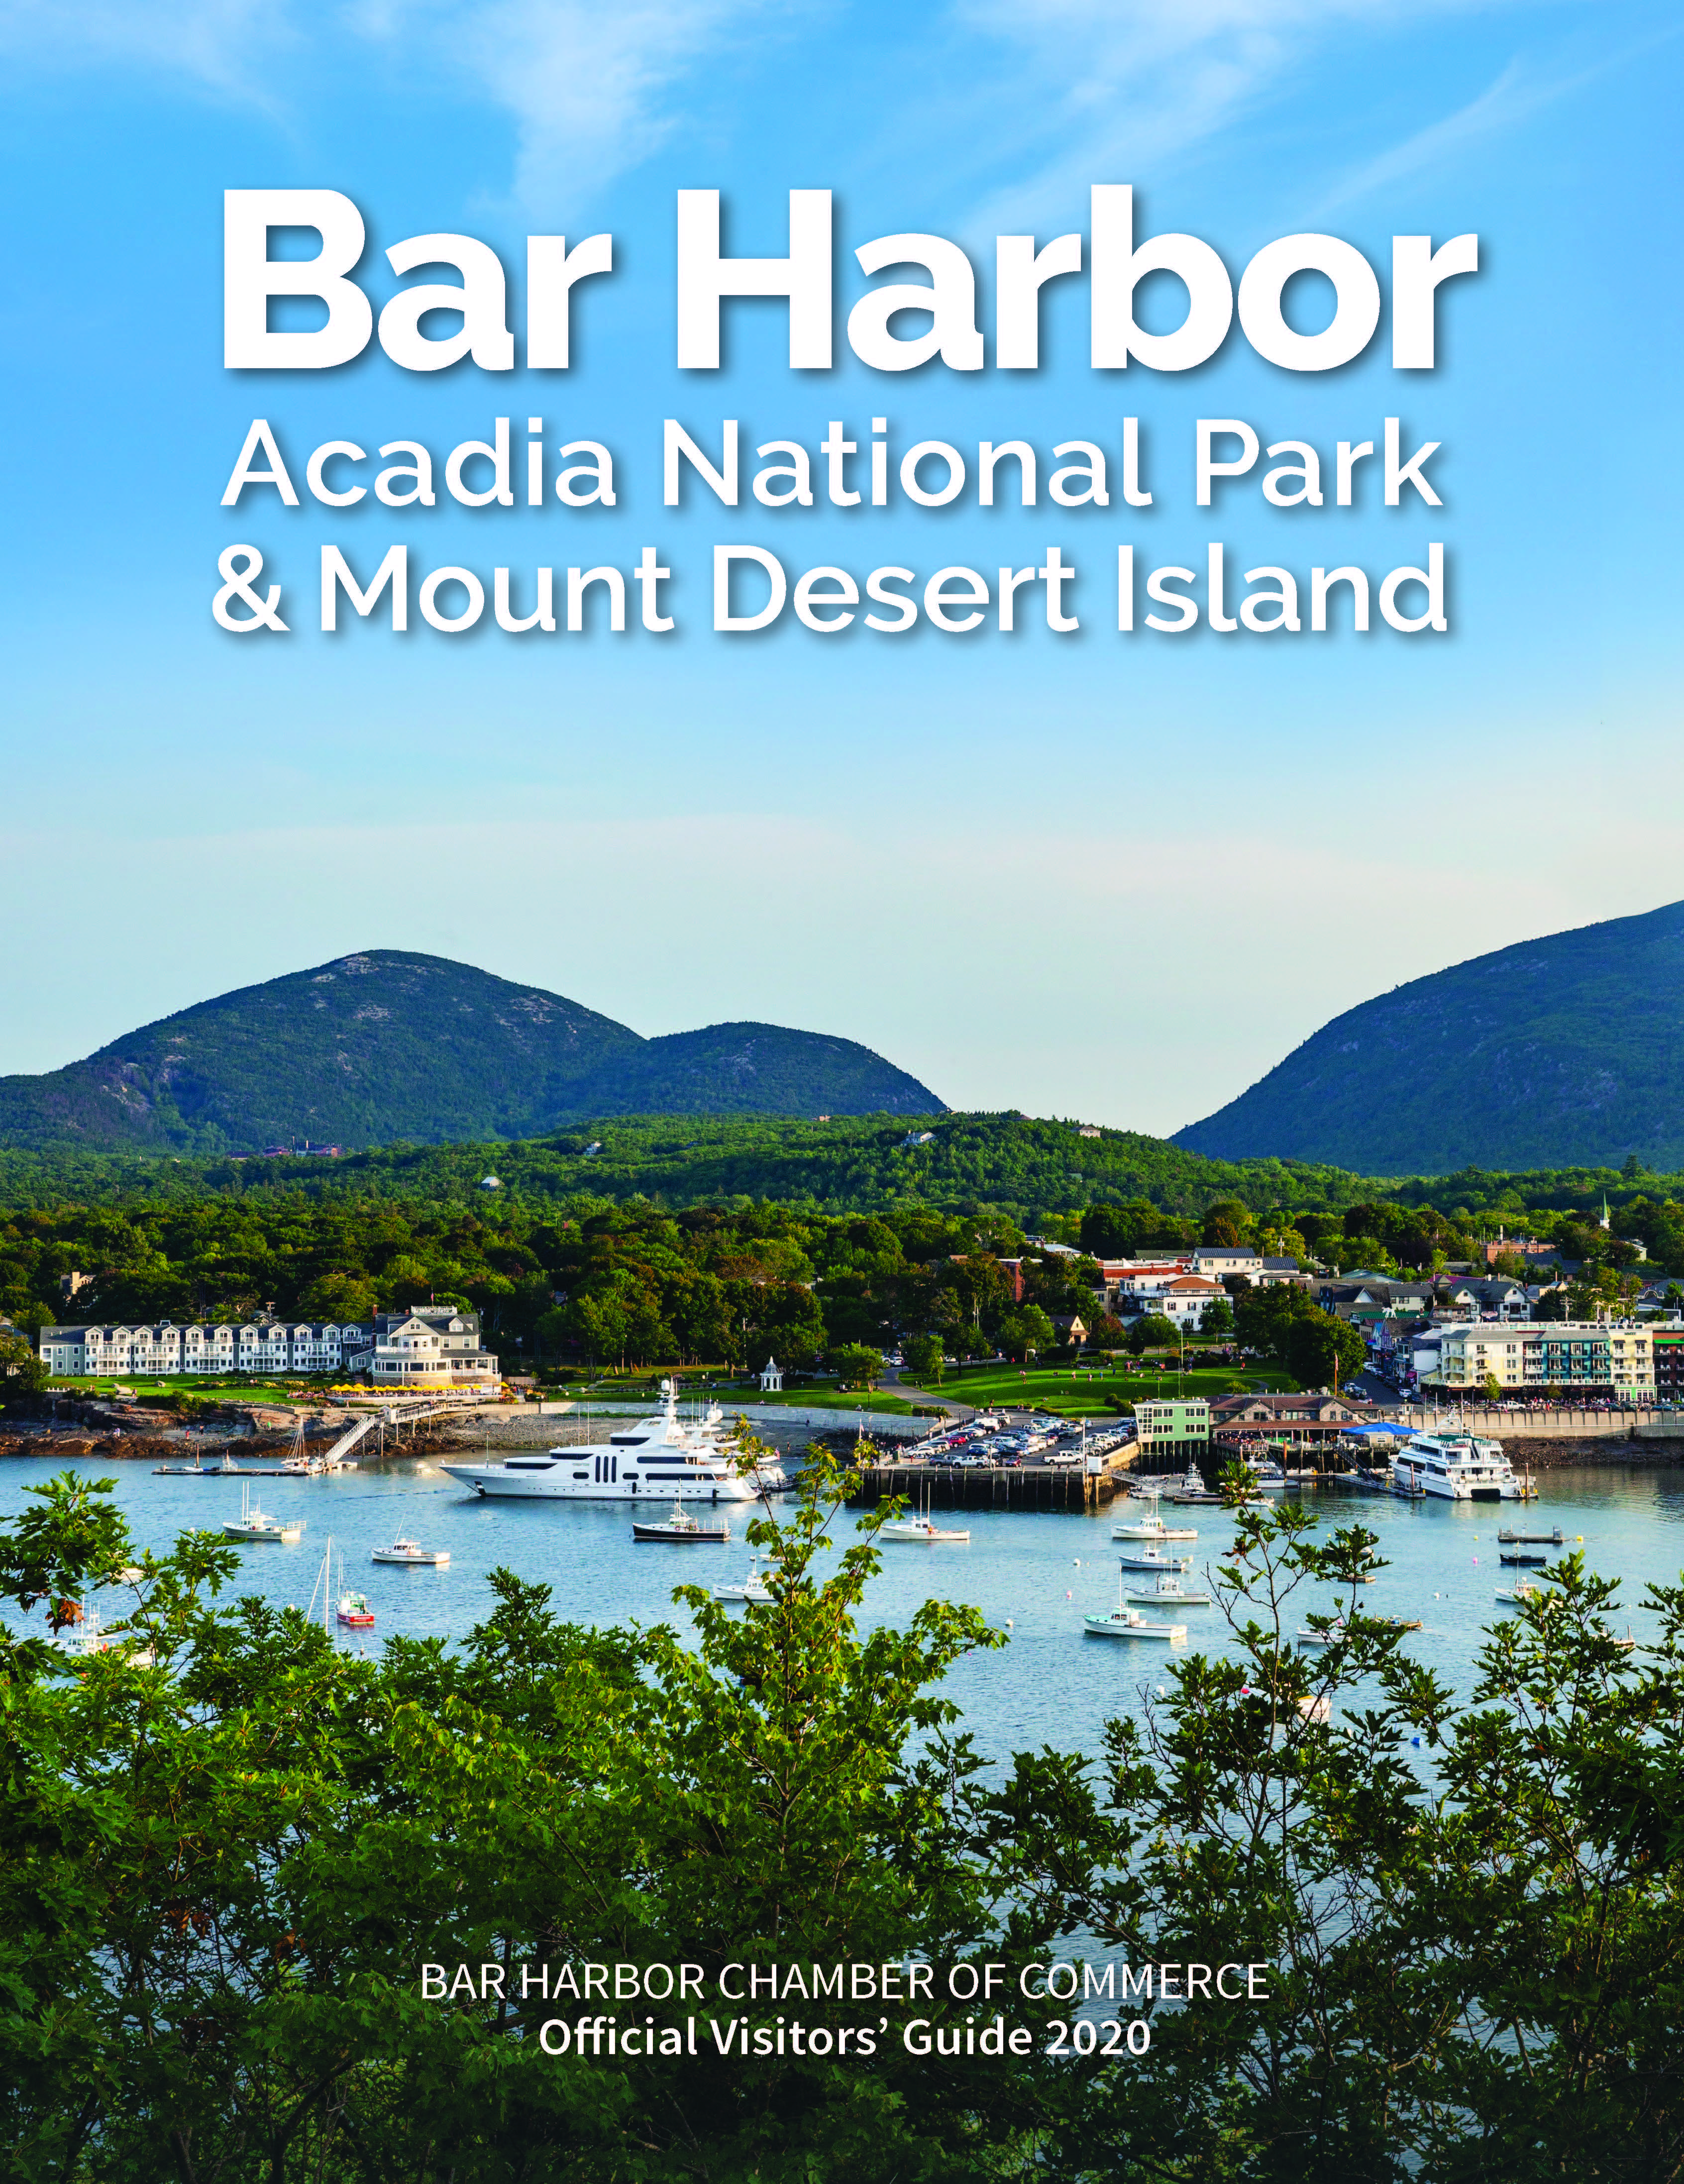 12 places to visit and things to do in Bar Harbor for 2020